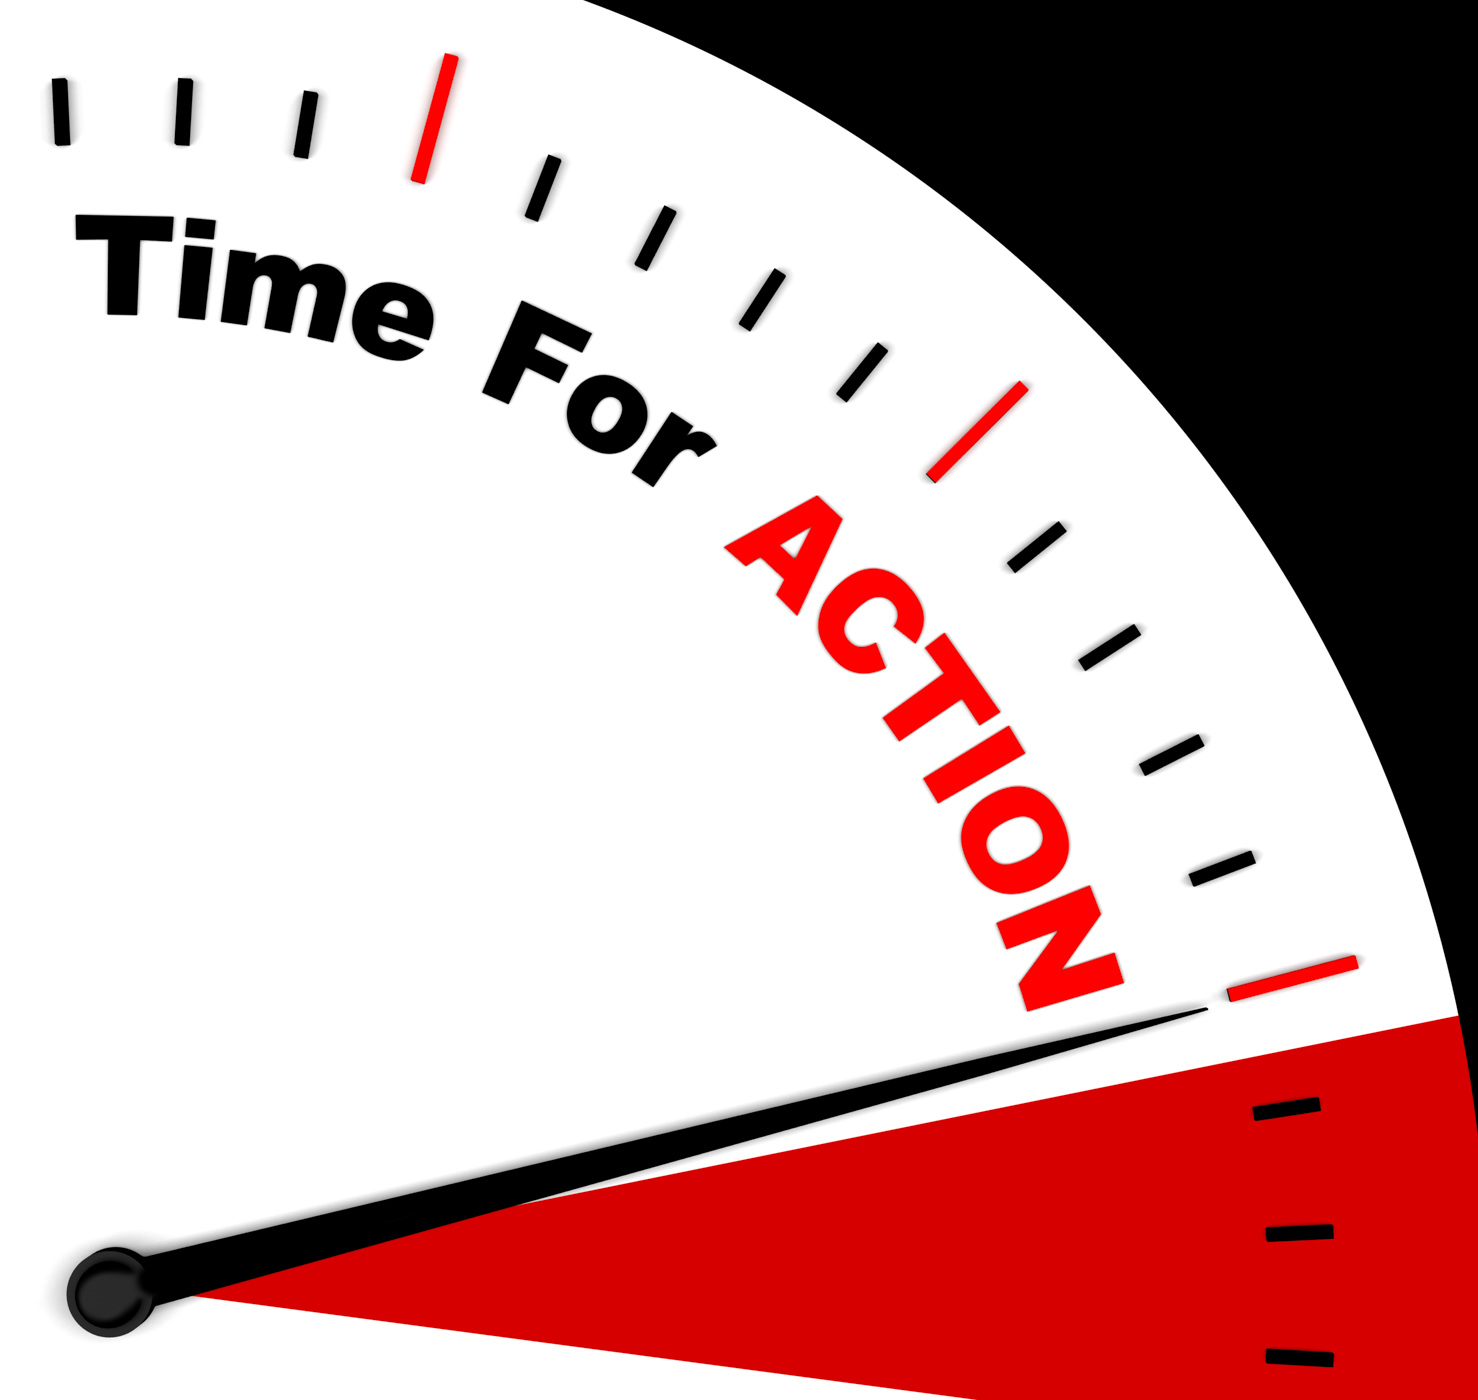 Time for action clock saying to inspire and motivate photo